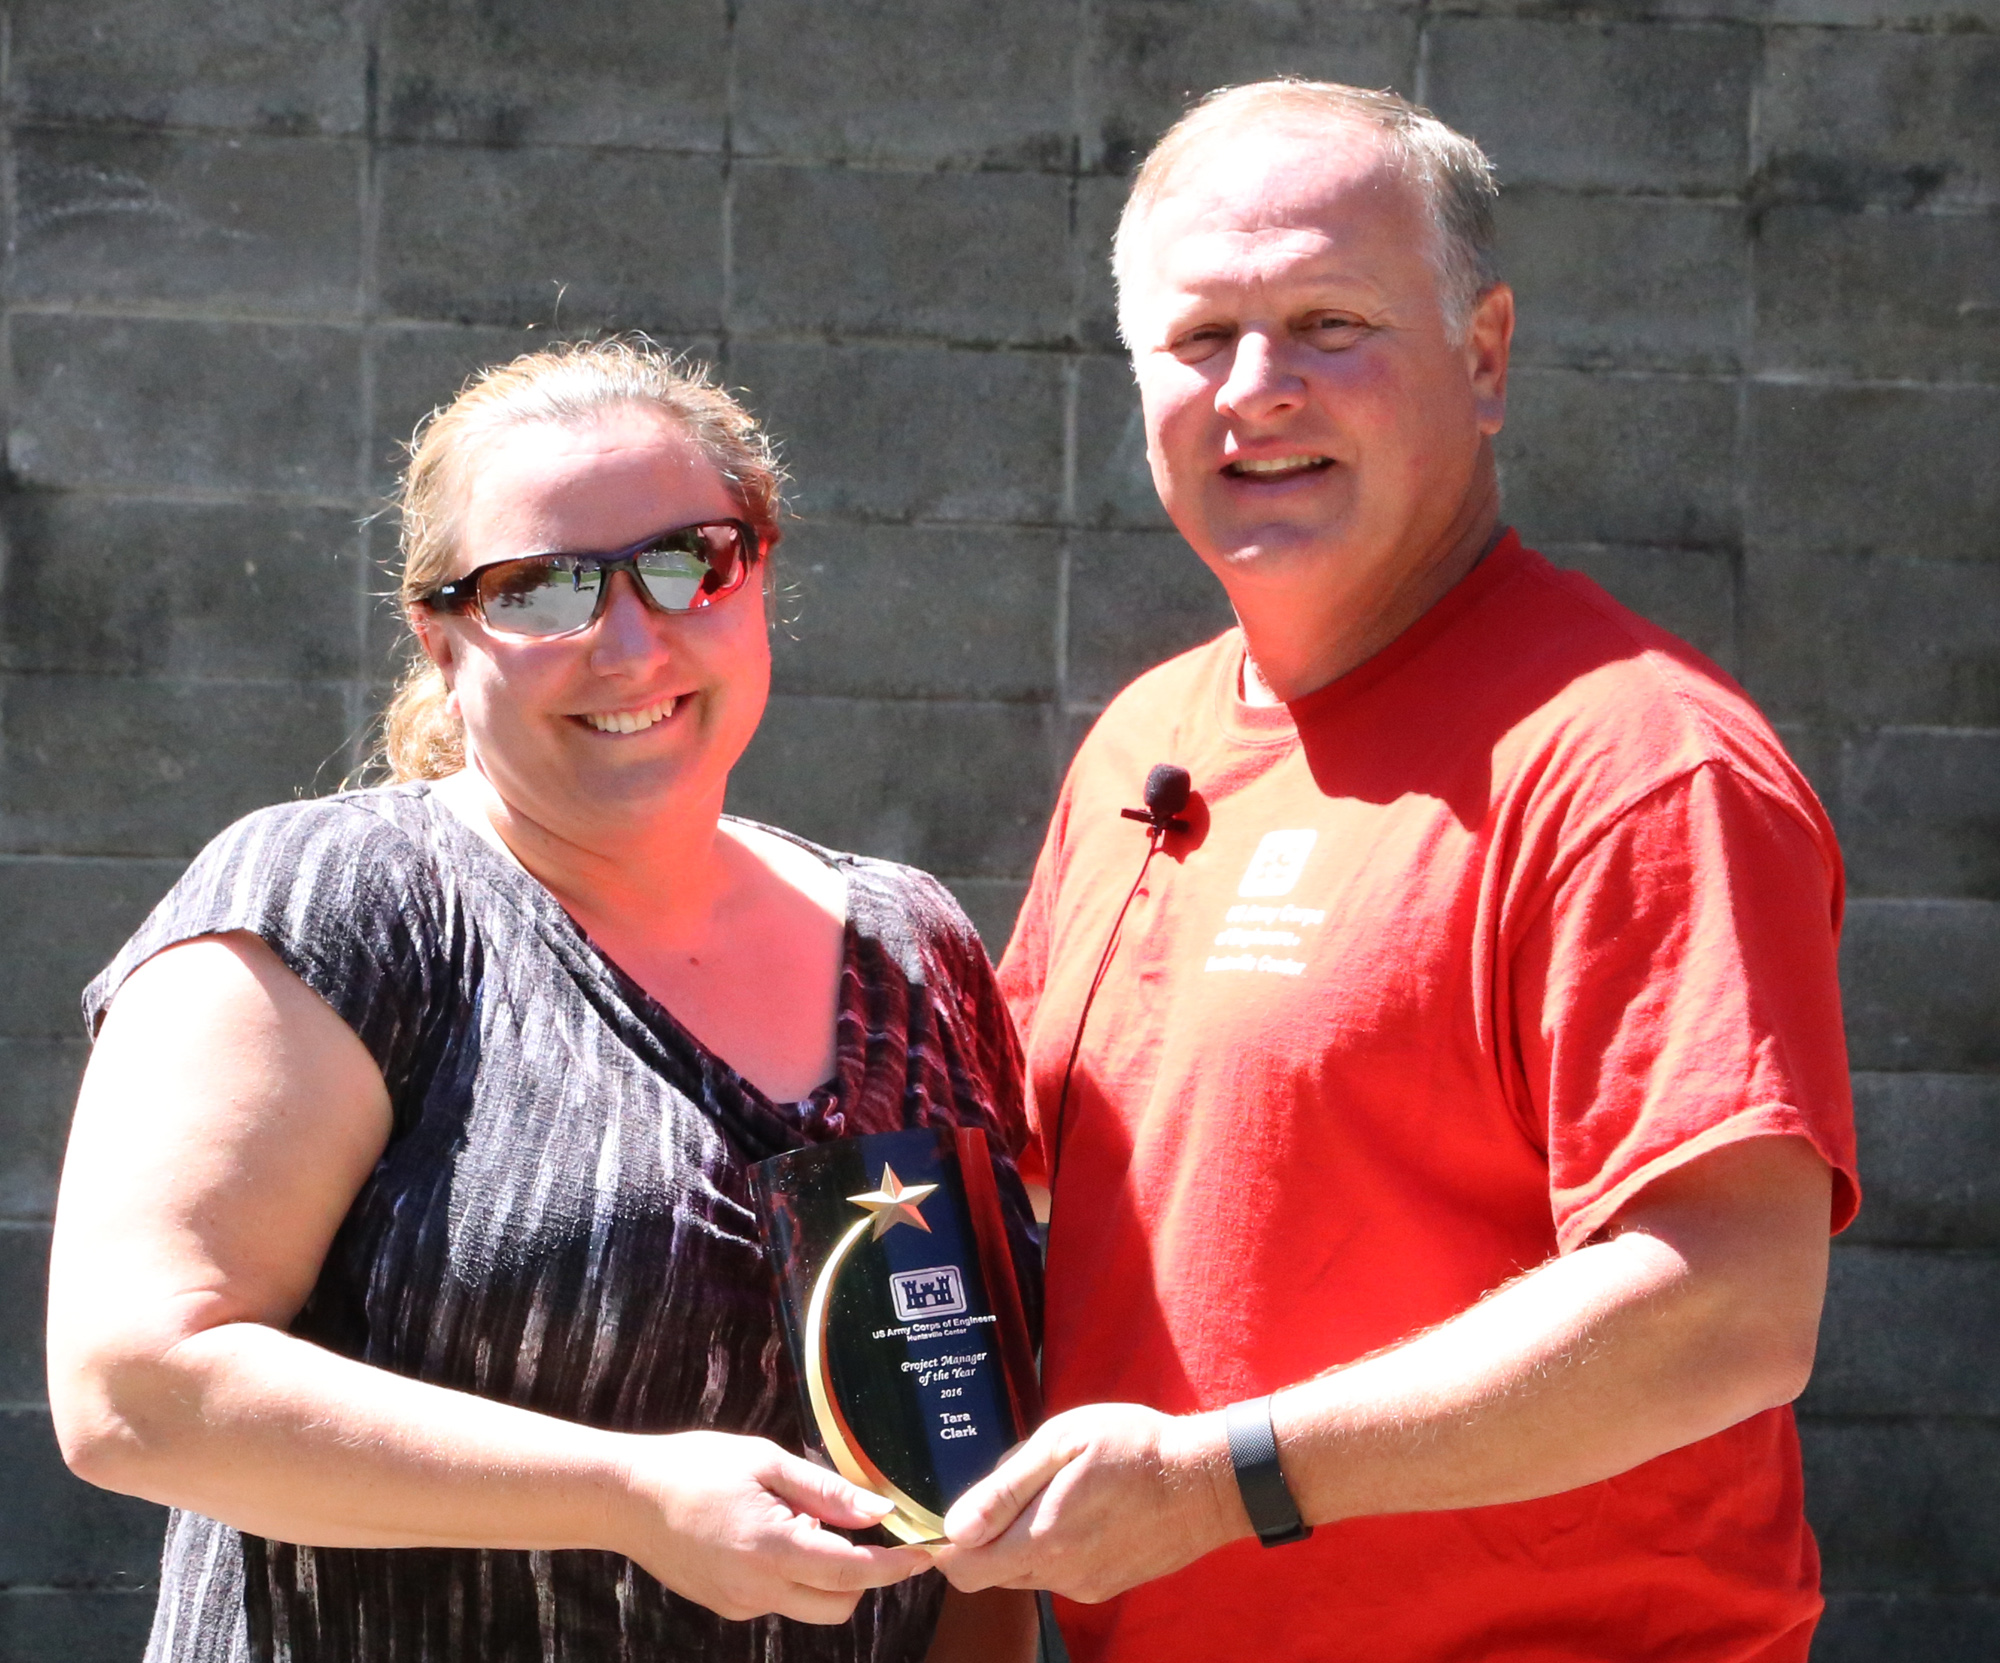 Tara Clark, project manager for the Ballistic Missile Defense Branch, receives the Project Manager of the Year Award from Col. Robert J. Ruch, then commander at the Huntsville Center, at an award ceremony in June 2016. (Photo by Rusty Torbett, Visual Information Specialist, U.S. Army Corps of Engineers.)